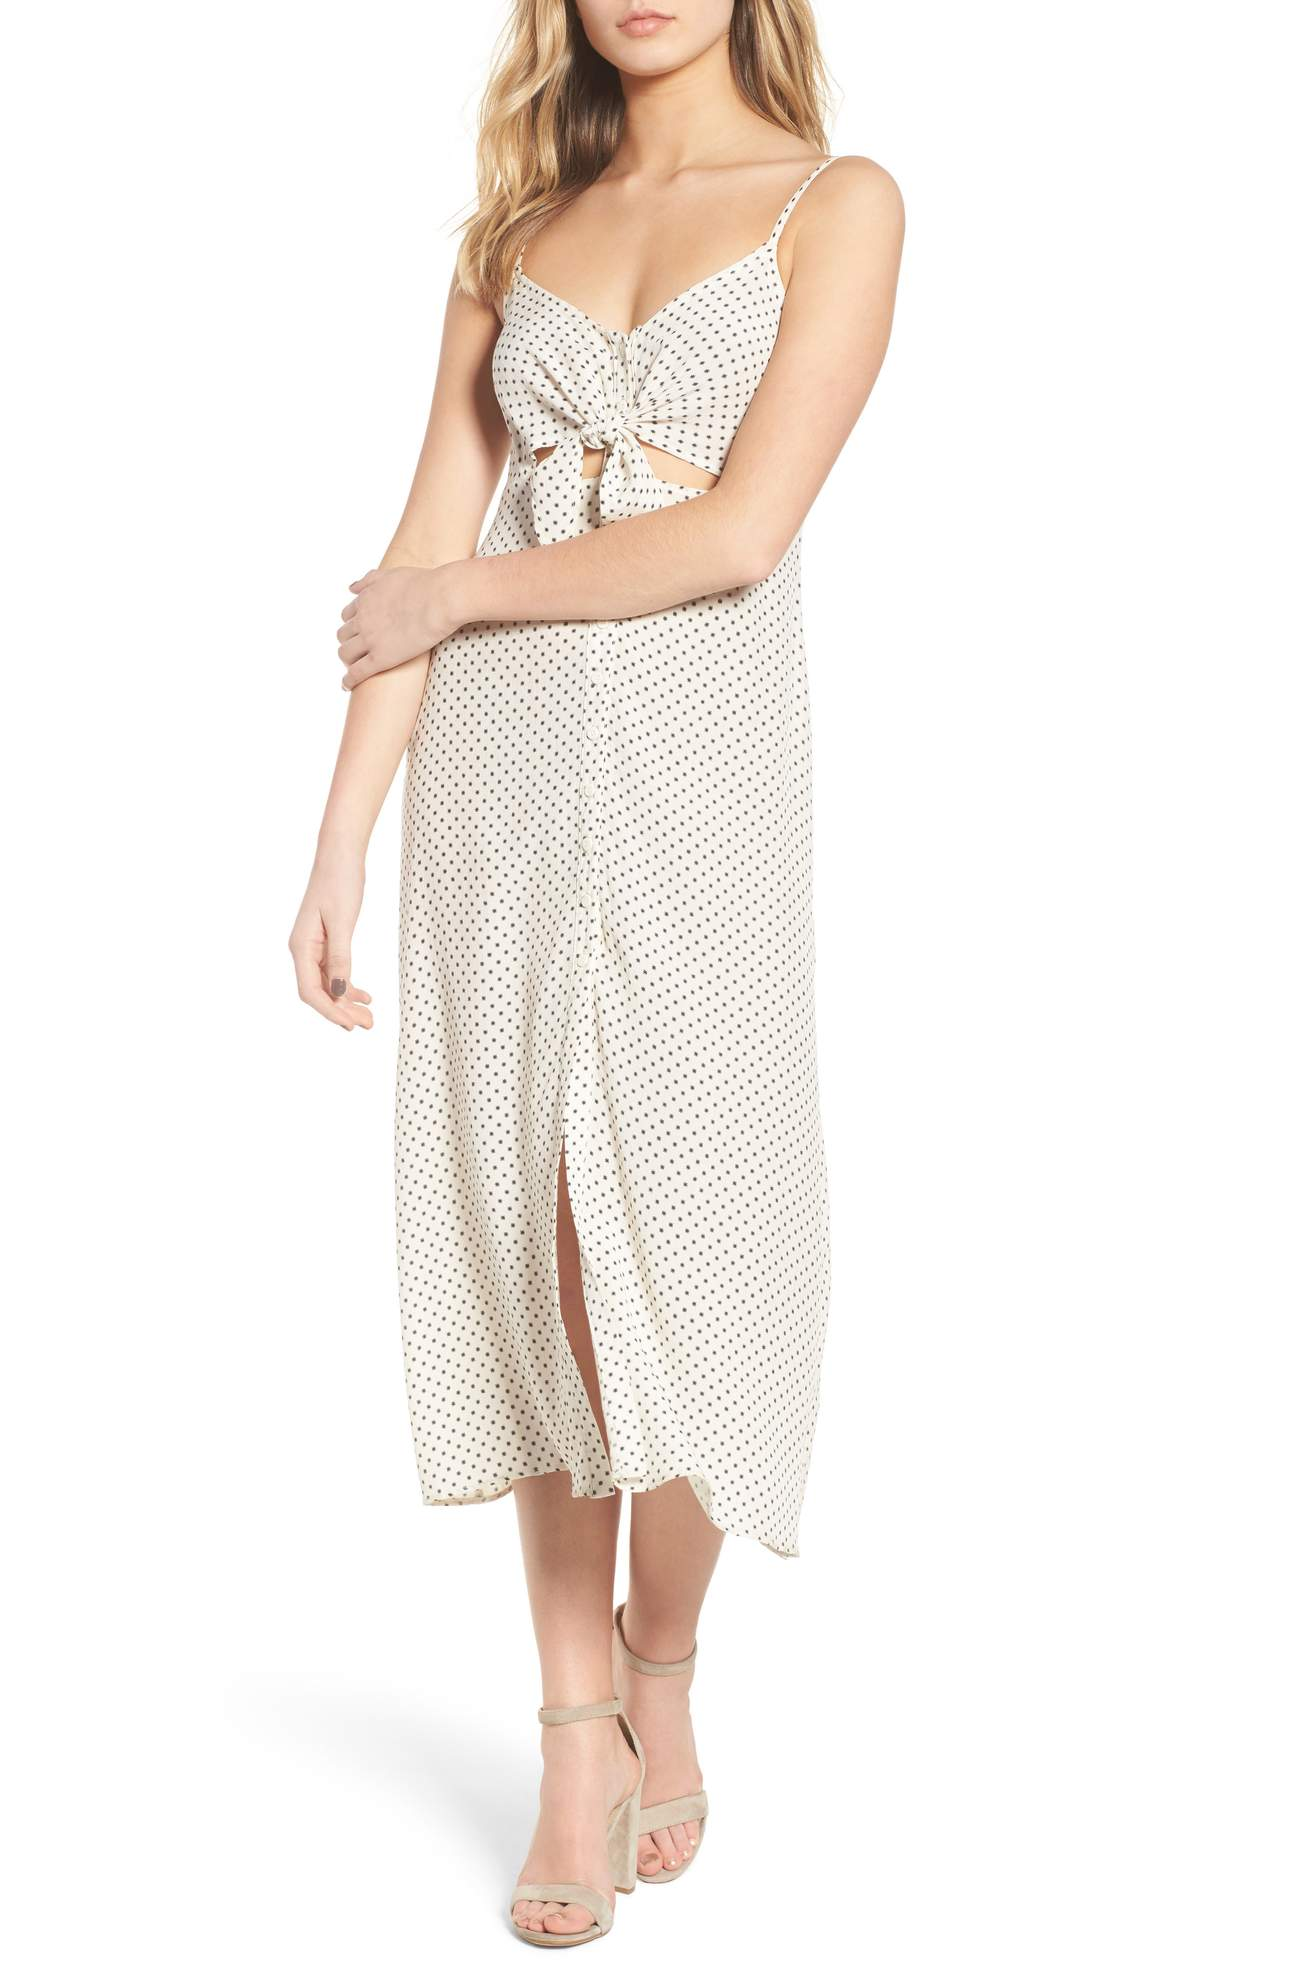 The Tie Front Midi Dress was originally $49 and is now $29.40. A simple button-front slipdress is remade for the season with a tied bodice, sleek cutouts and a peppy polka dot print.<p>(Image: Nordstrom)</p>